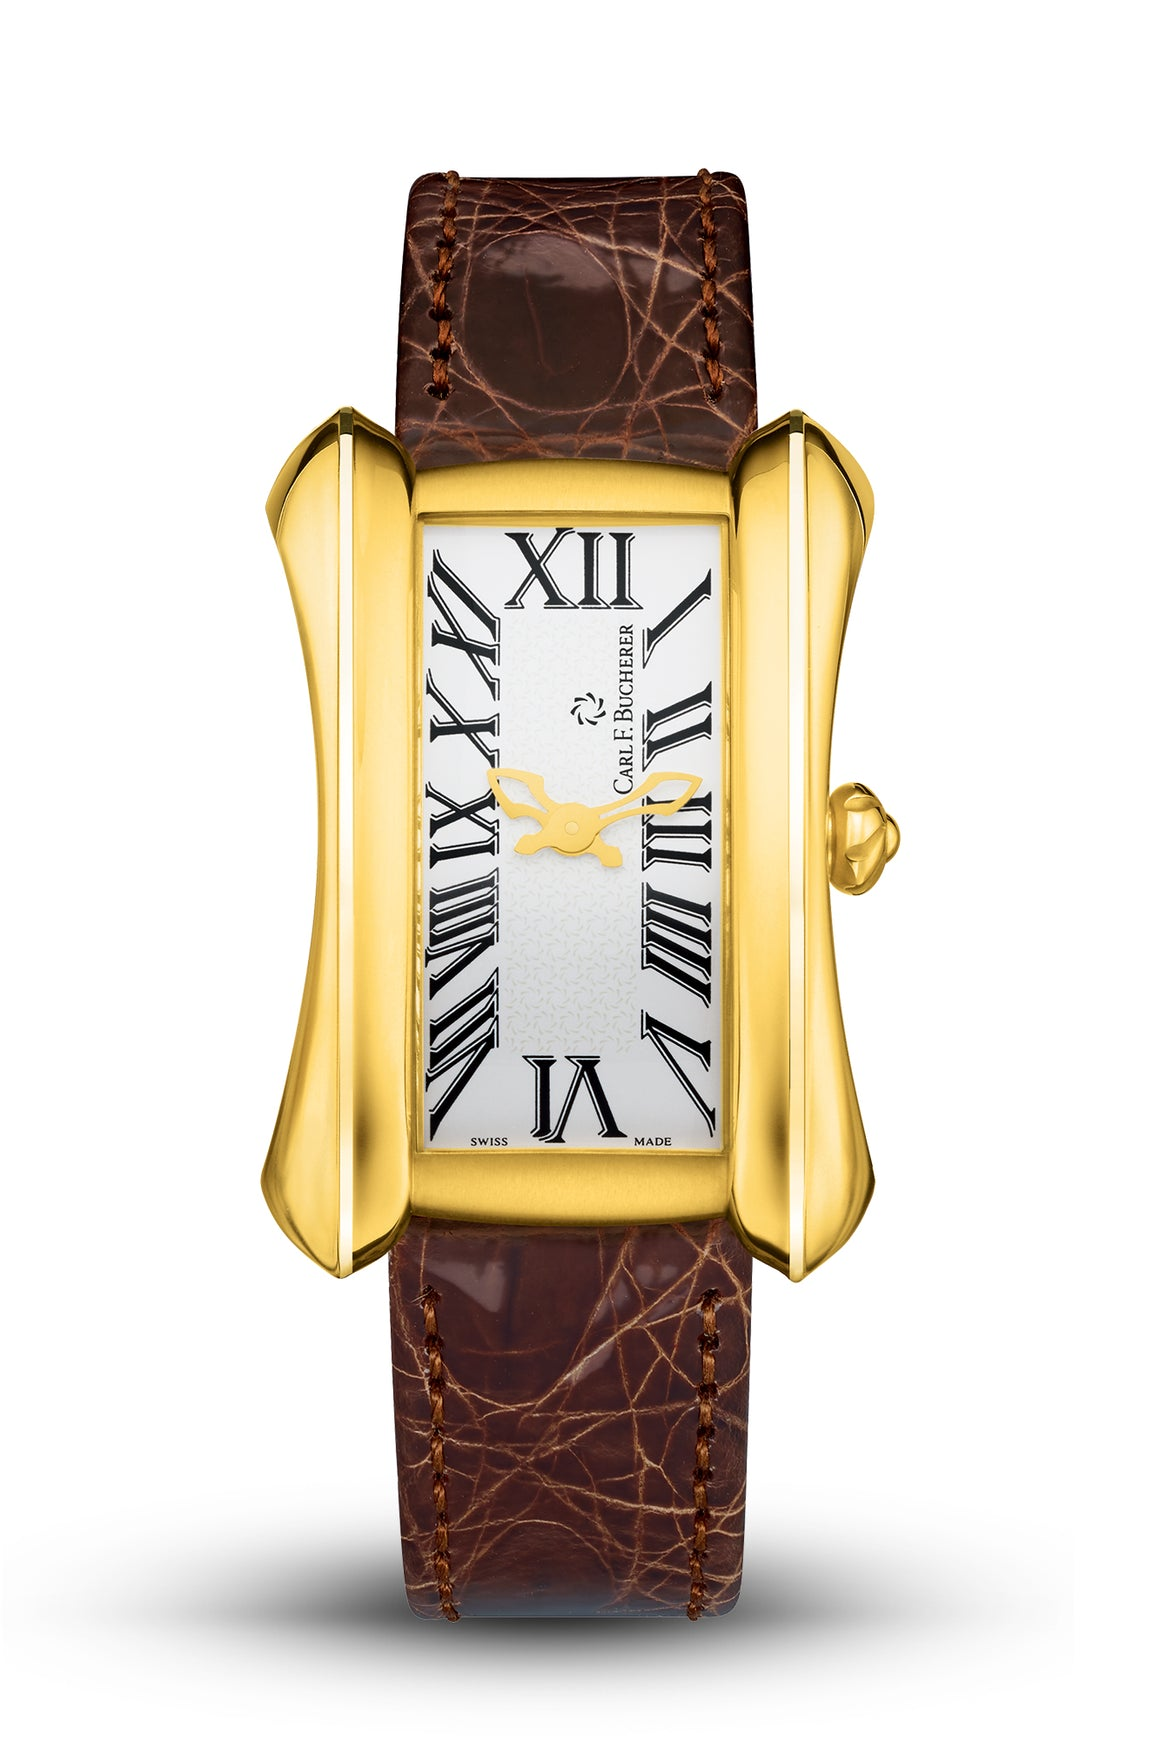 C.F. BUCHERER ALACRIA DIVA WATCH